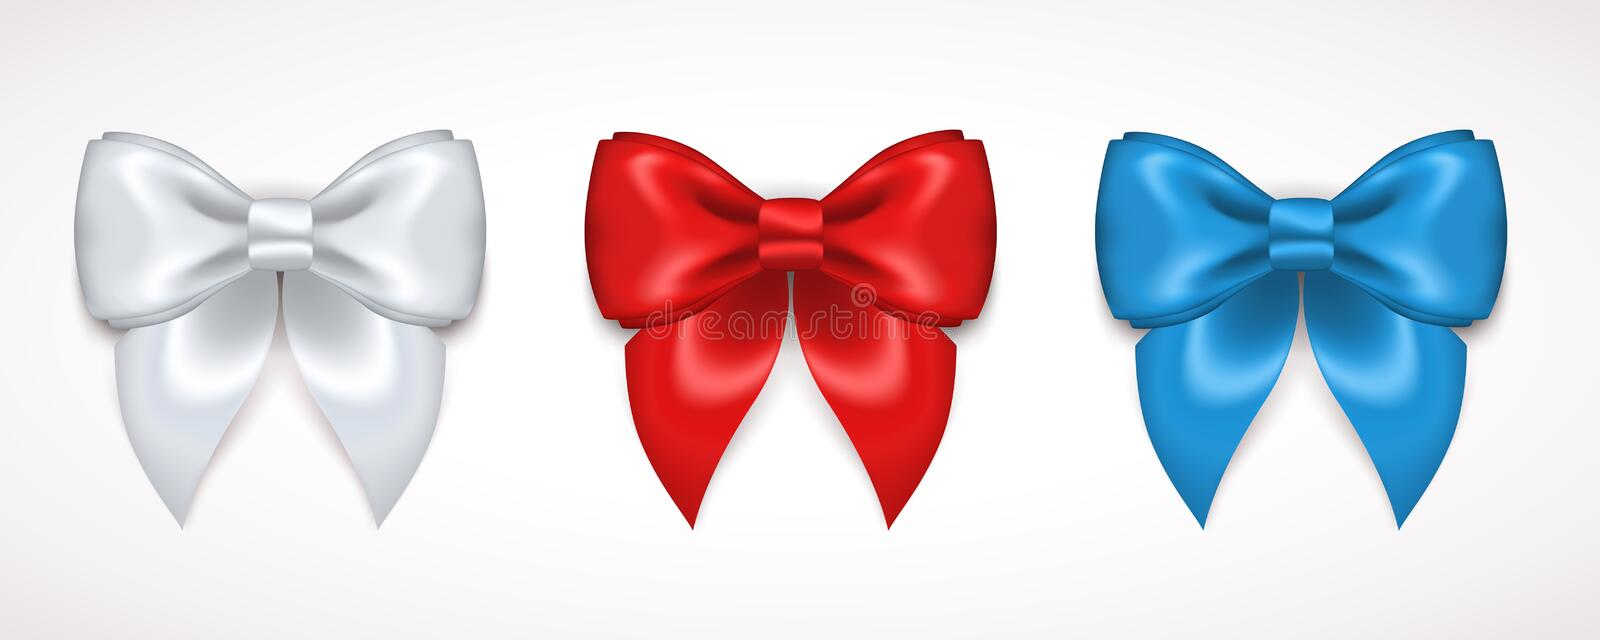 Set of Silk White, Red and Blue Bows. Set of Silk Bow. Vector Illustration. White, Red and Blue Bows for Gift Design, Invitation Decorative Cards, Voucher Design stock illustration